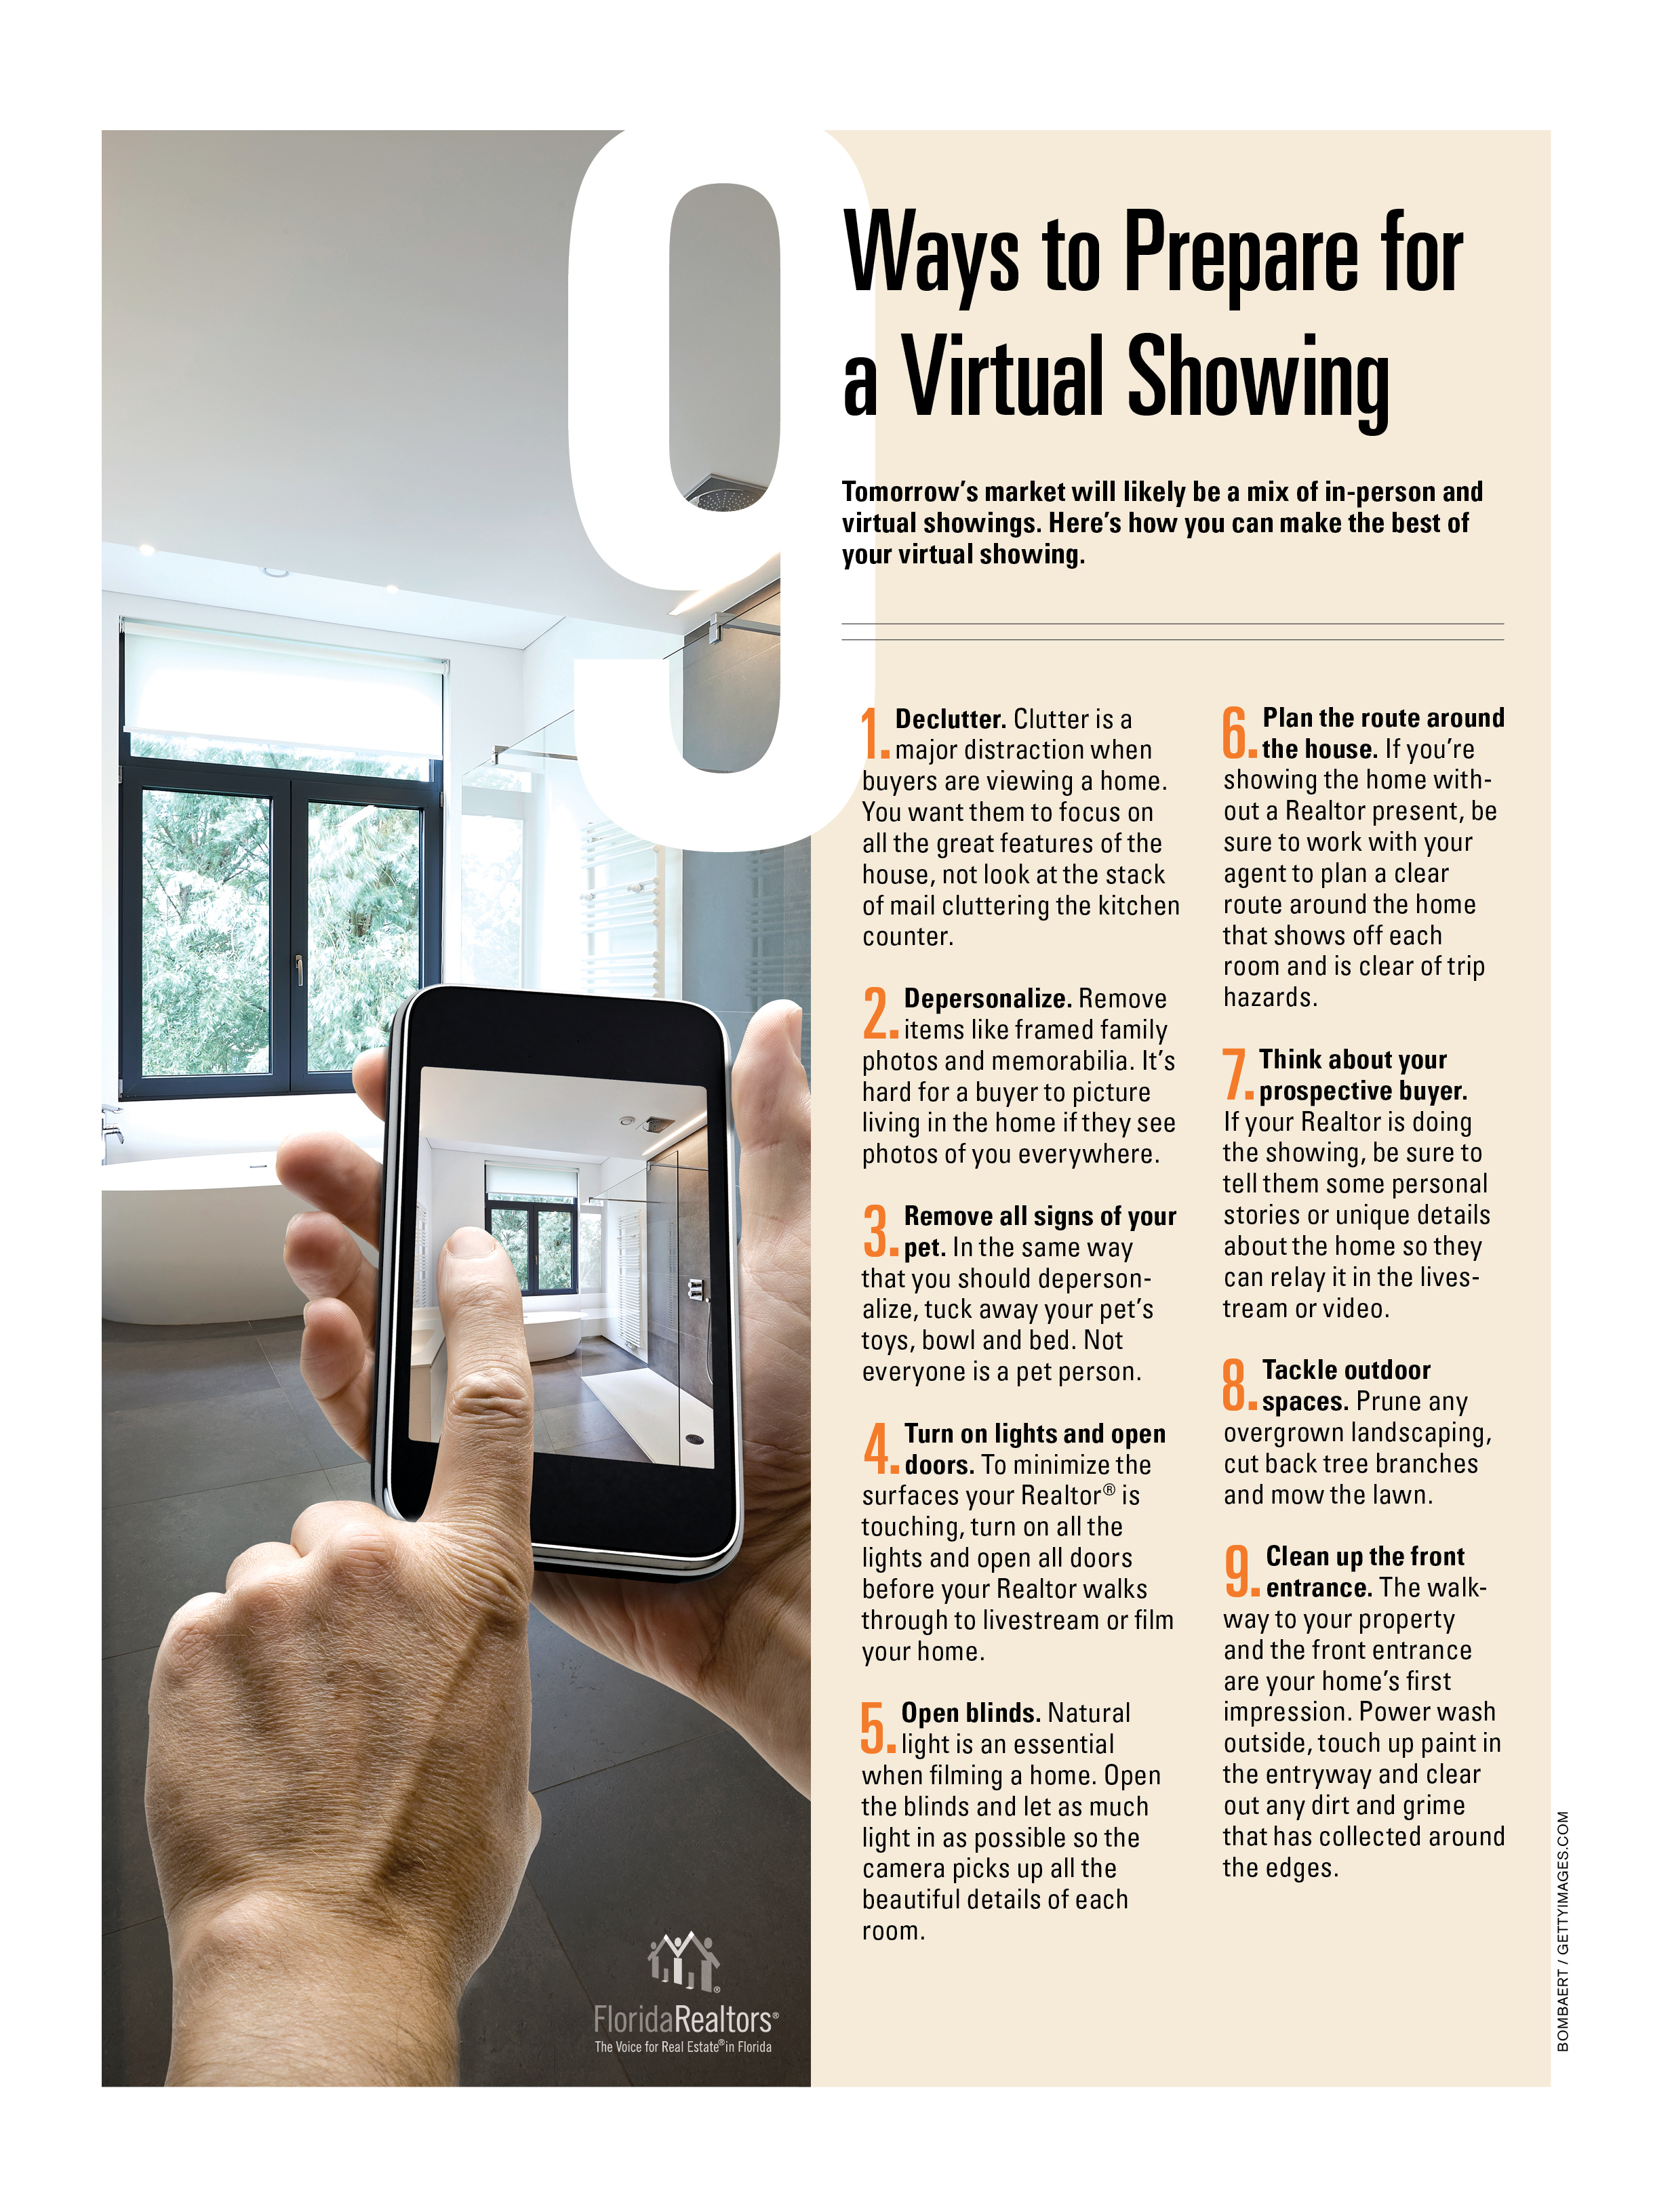 9 Ways to get ready for a Virtual Showing